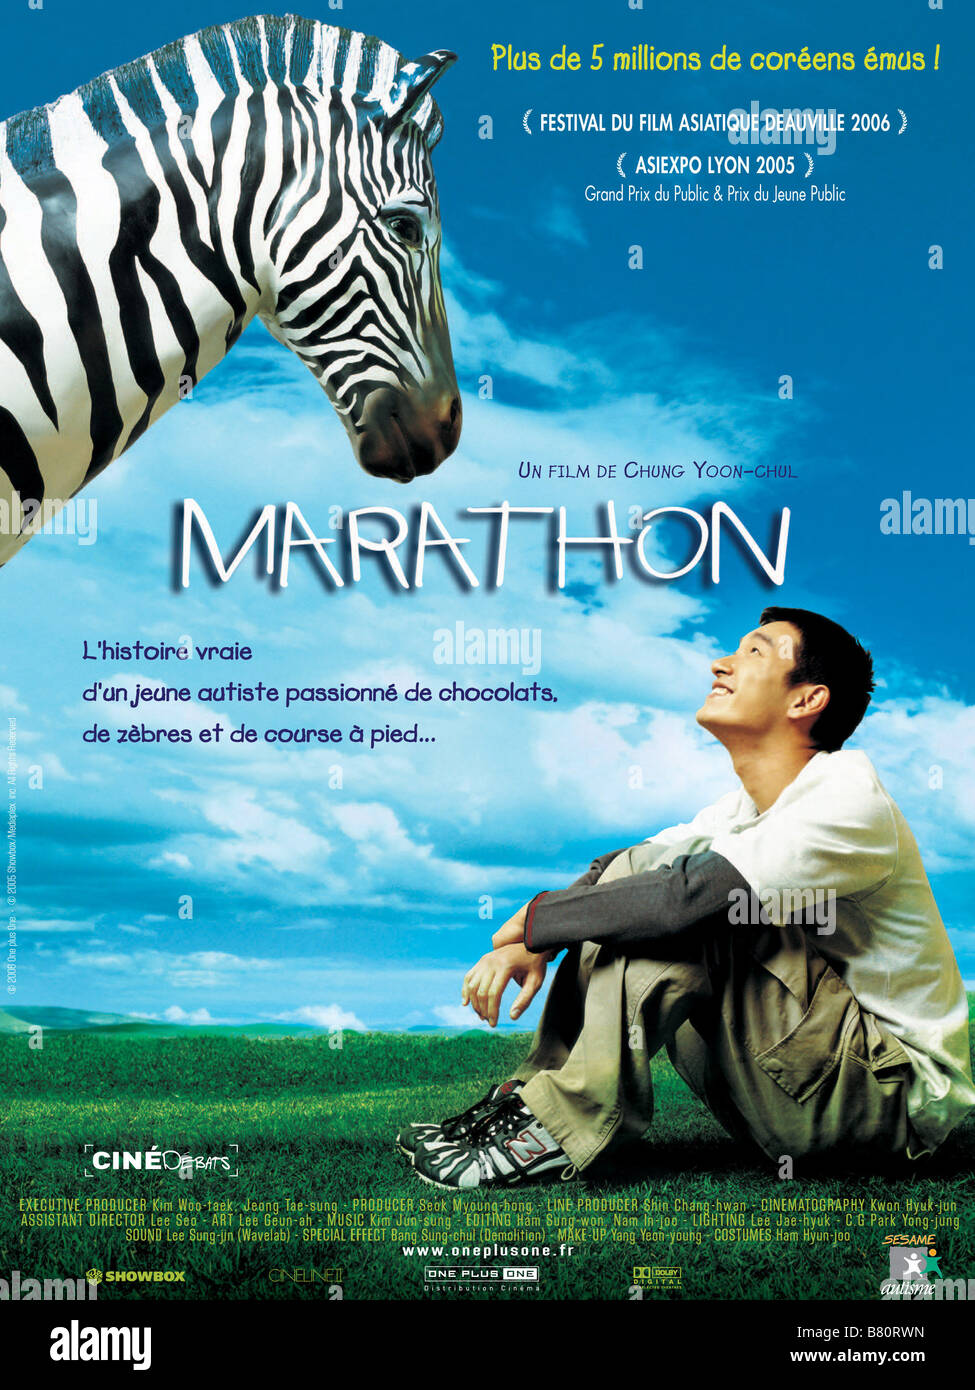 marathon-marathon-year-2005-south-korea-